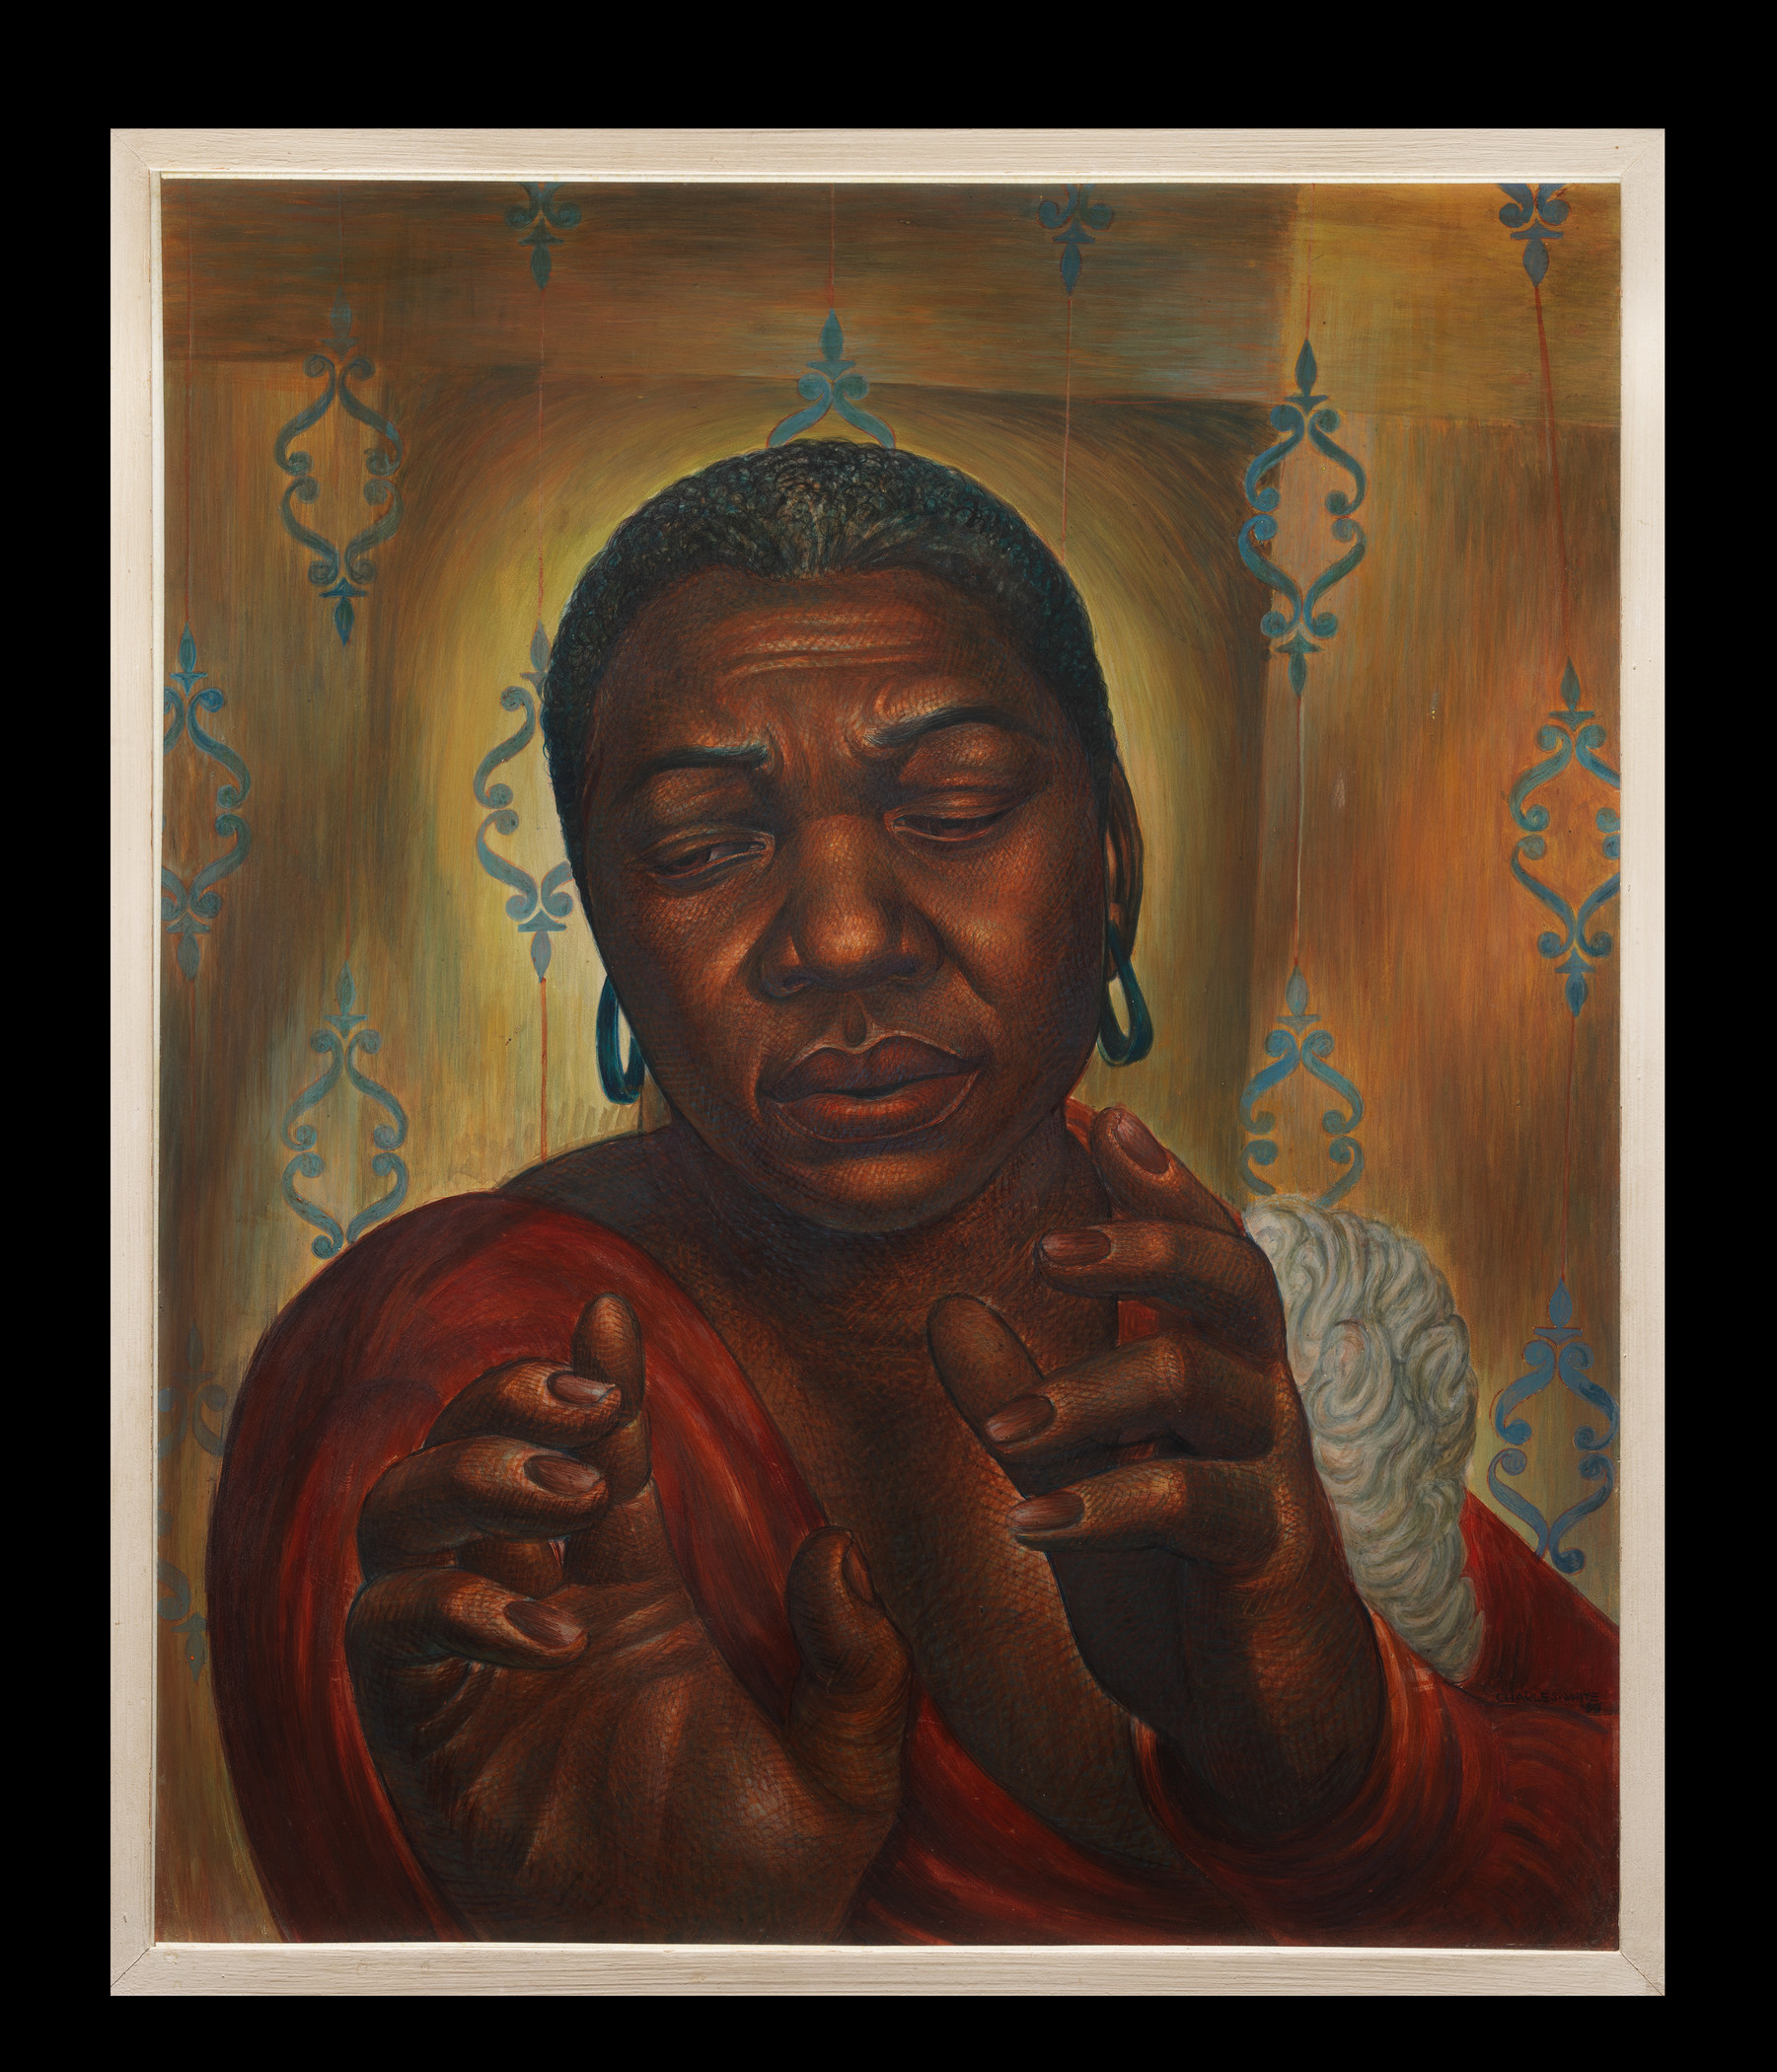 Charles White, Bessie Smith, 1950, private collection, © The Charles White Archives, photo © Museum Associates/LACMA